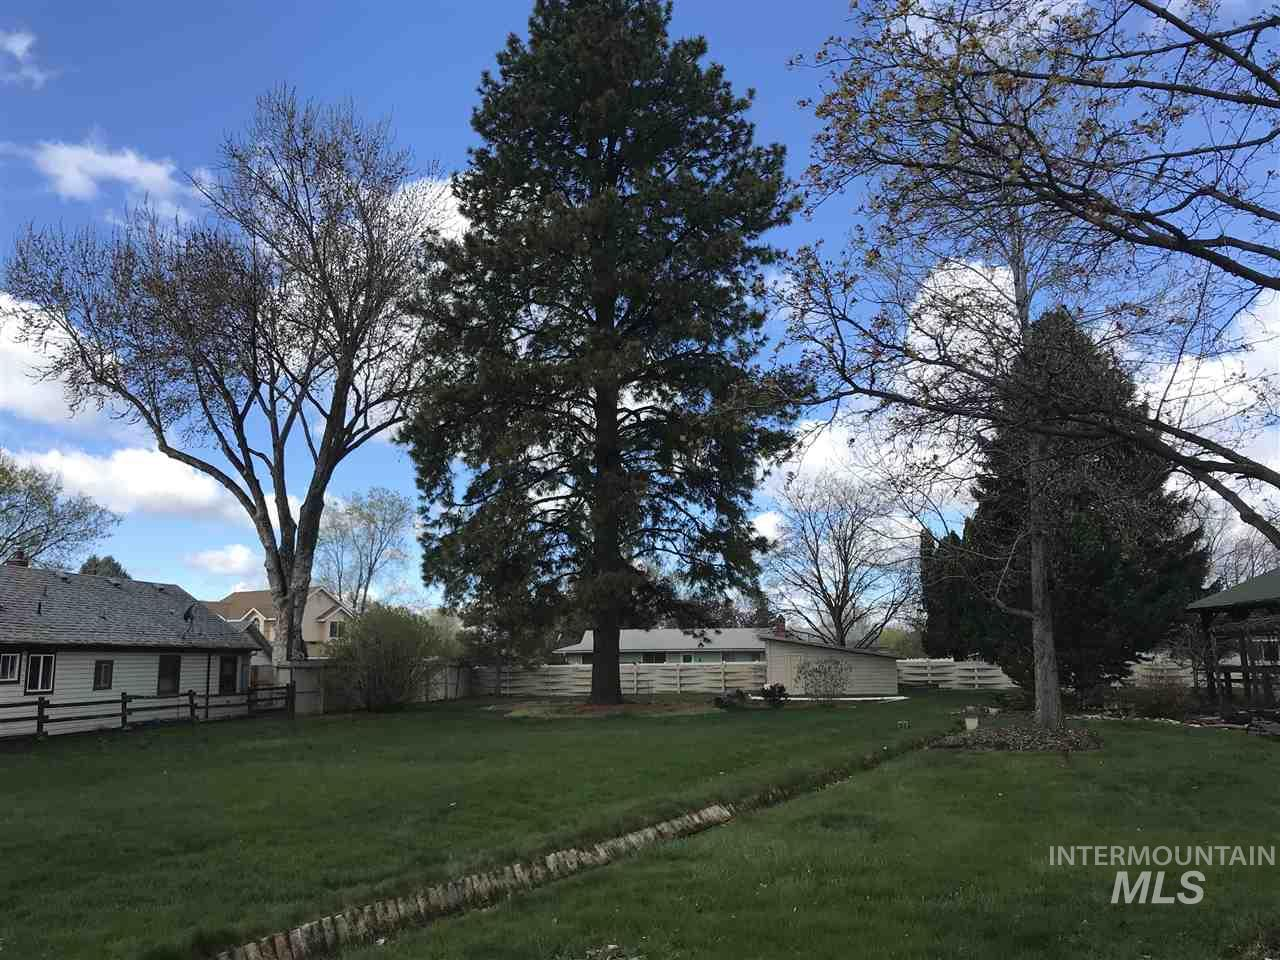 1719 S Hilton Street, Boise, Idaho 83705, Land For Sale, Price $139,900, 98725796